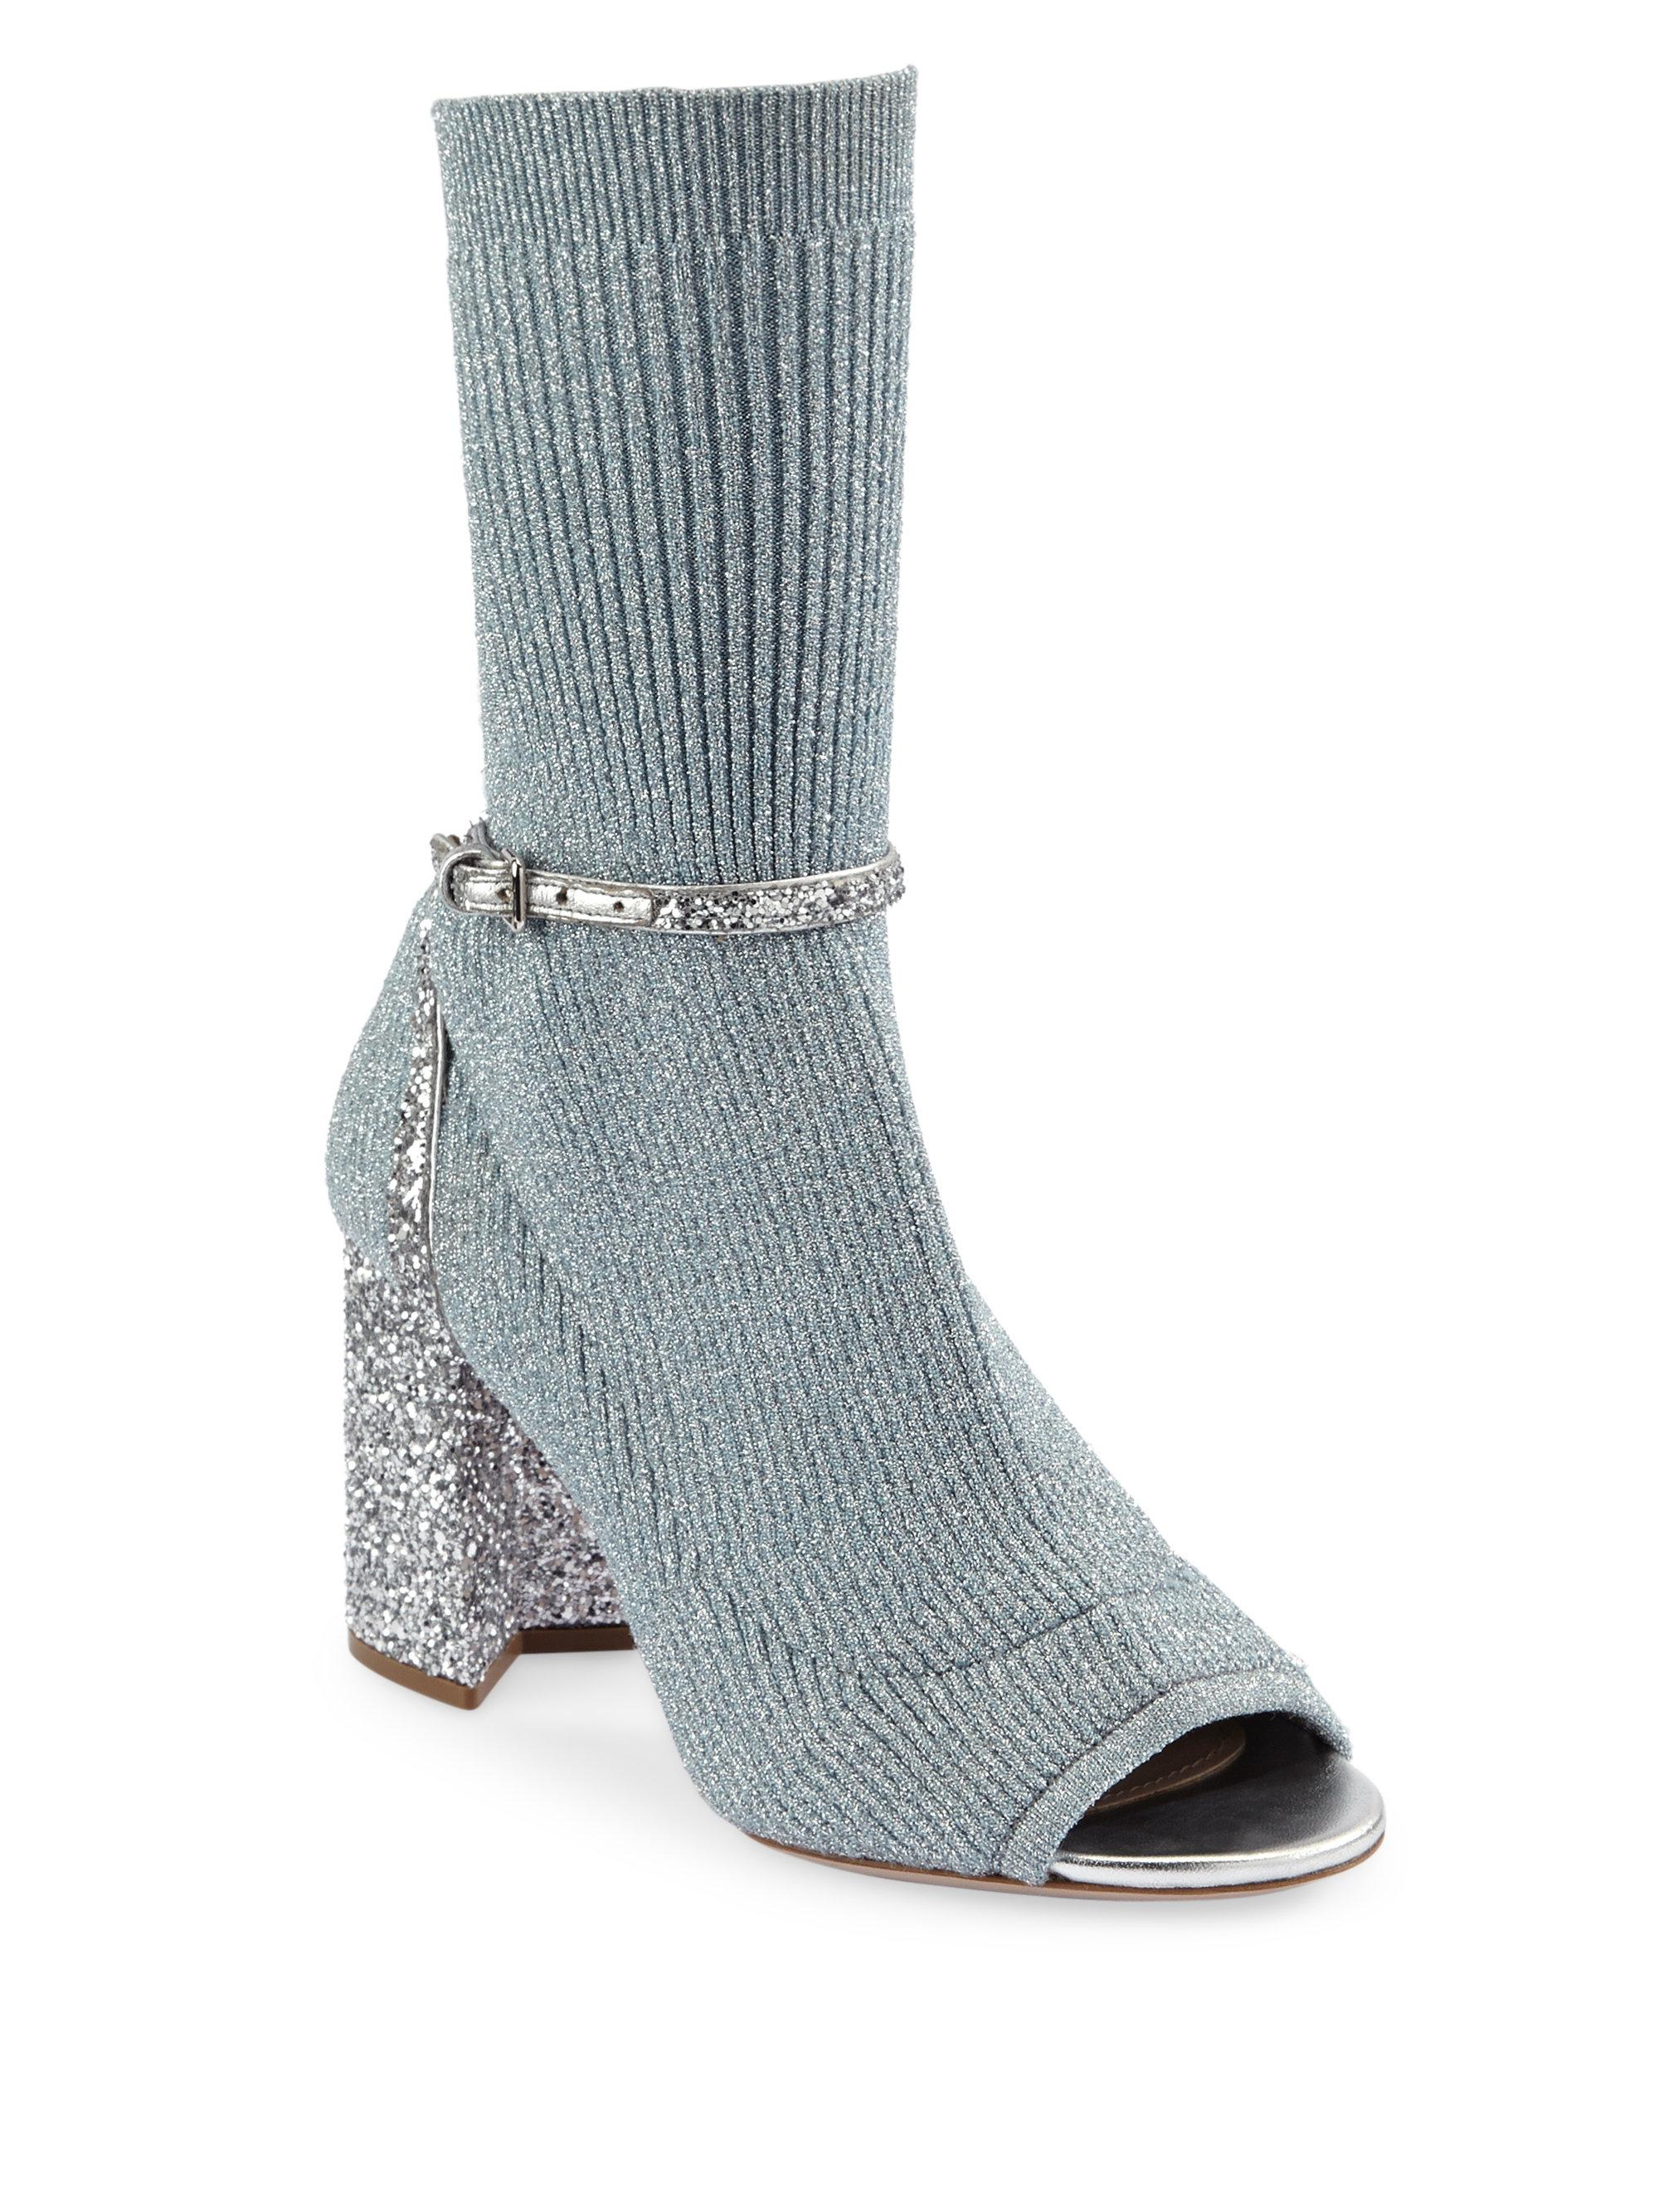 8e3122c34044 Gallery. Previously sold at  Saks Fifth Avenue · Women s Ankle Socks  Women s Miu Miu Glitter ...